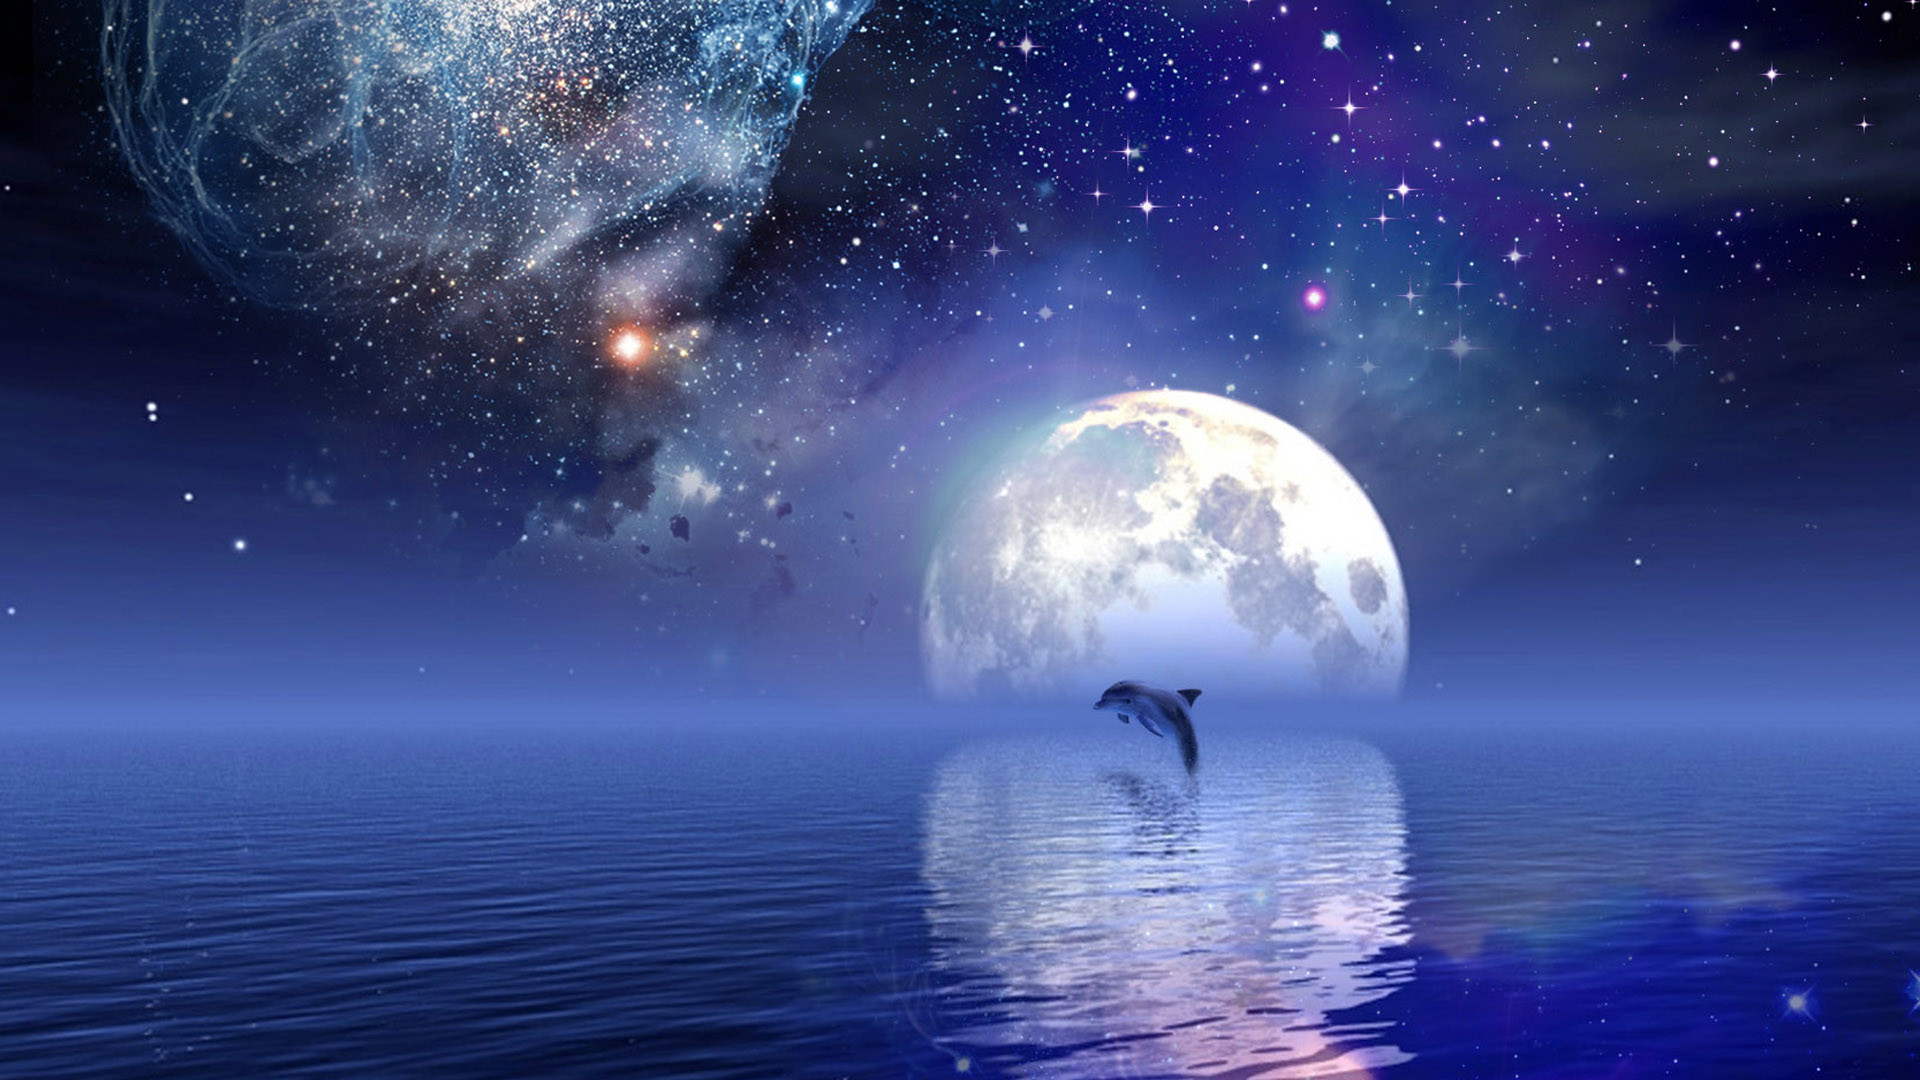 Dolphins Making a Heart at Sunset   Dolphin Heart Wallpaper Wallpaper  Dolphin Water   Dolphins   Pinterest   Wallpaper